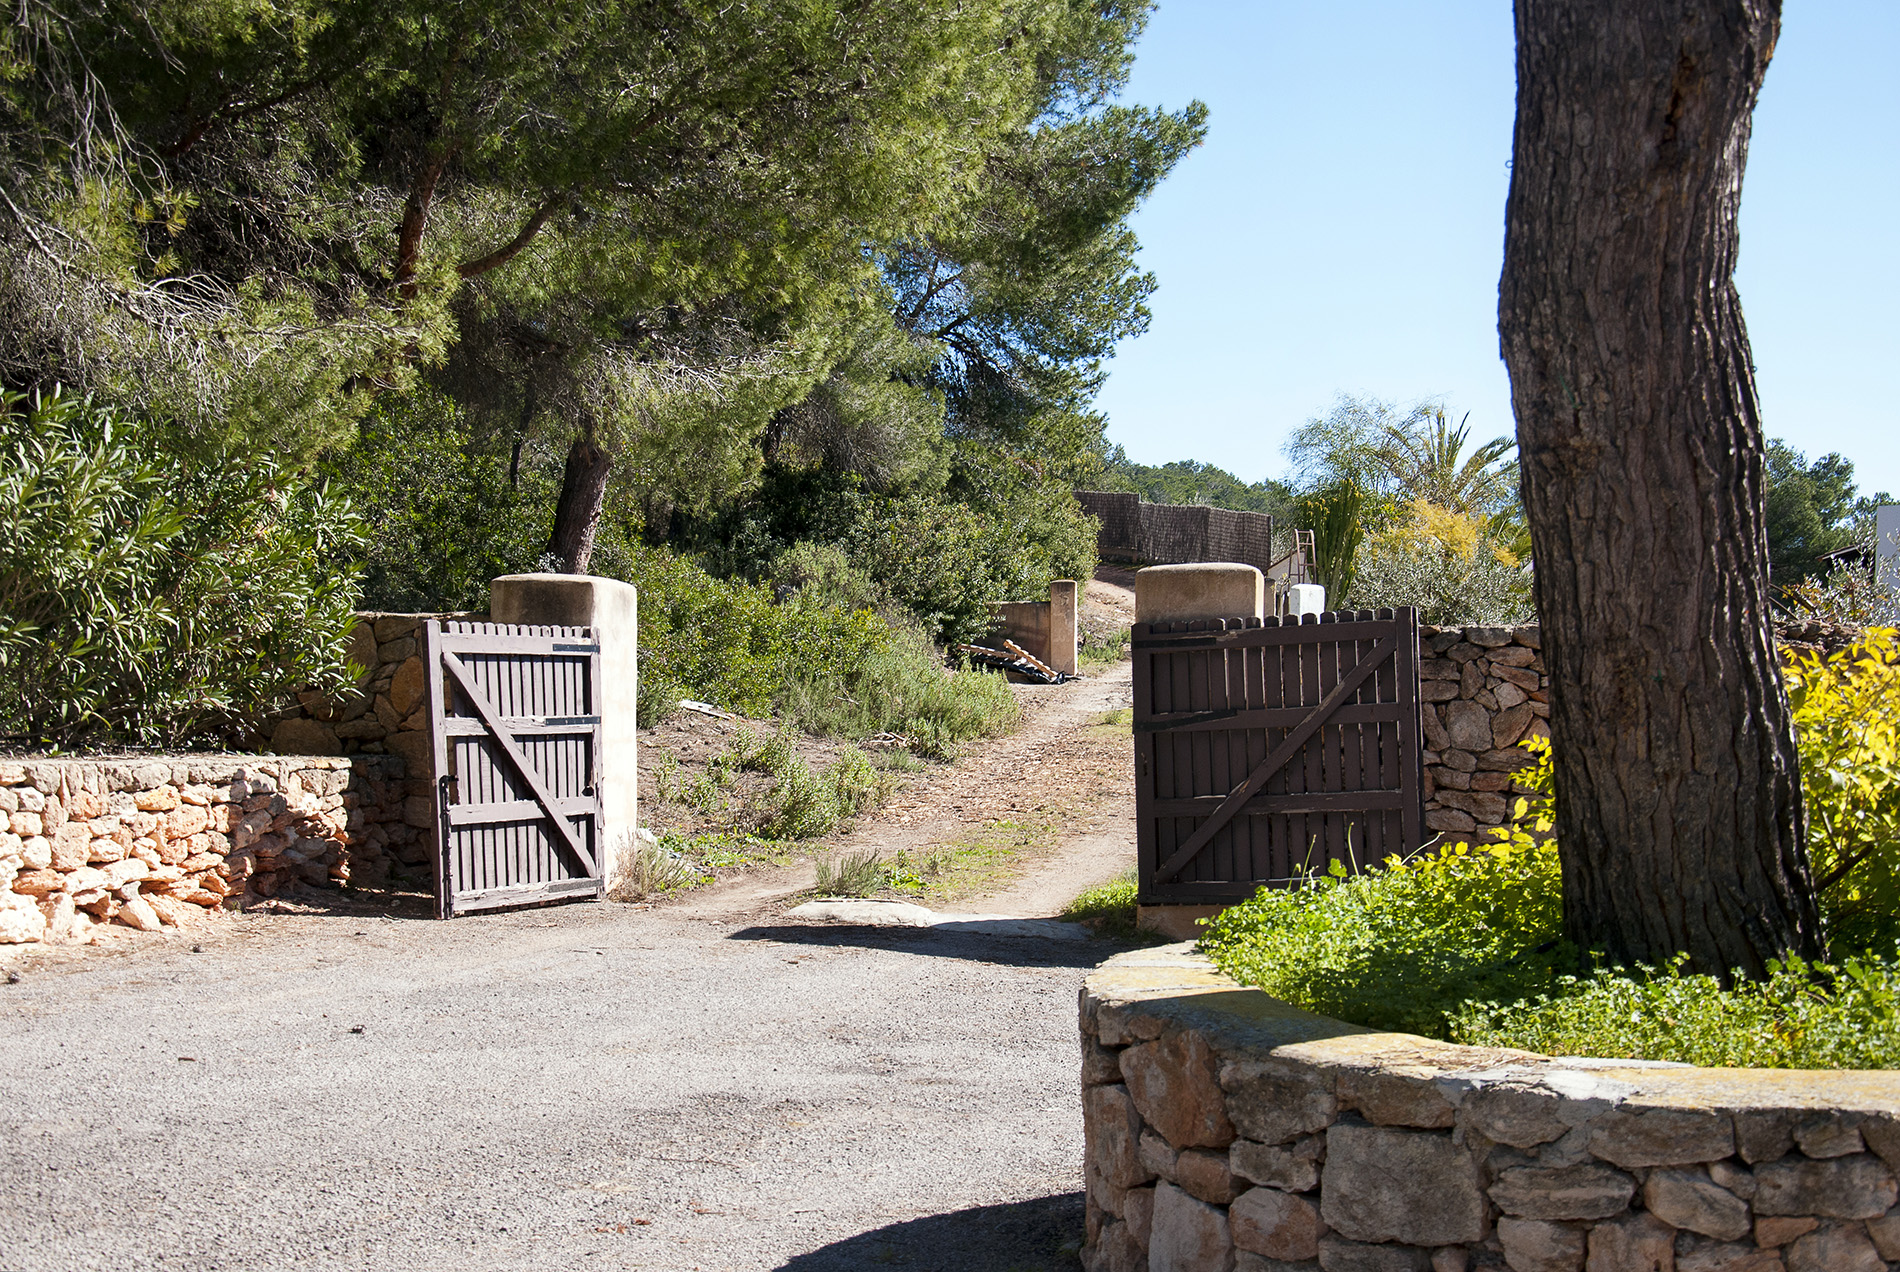 Land for Sale at Superb Plot With License In An Excellent Location Ibiza, Ibiza, 07819 Spain